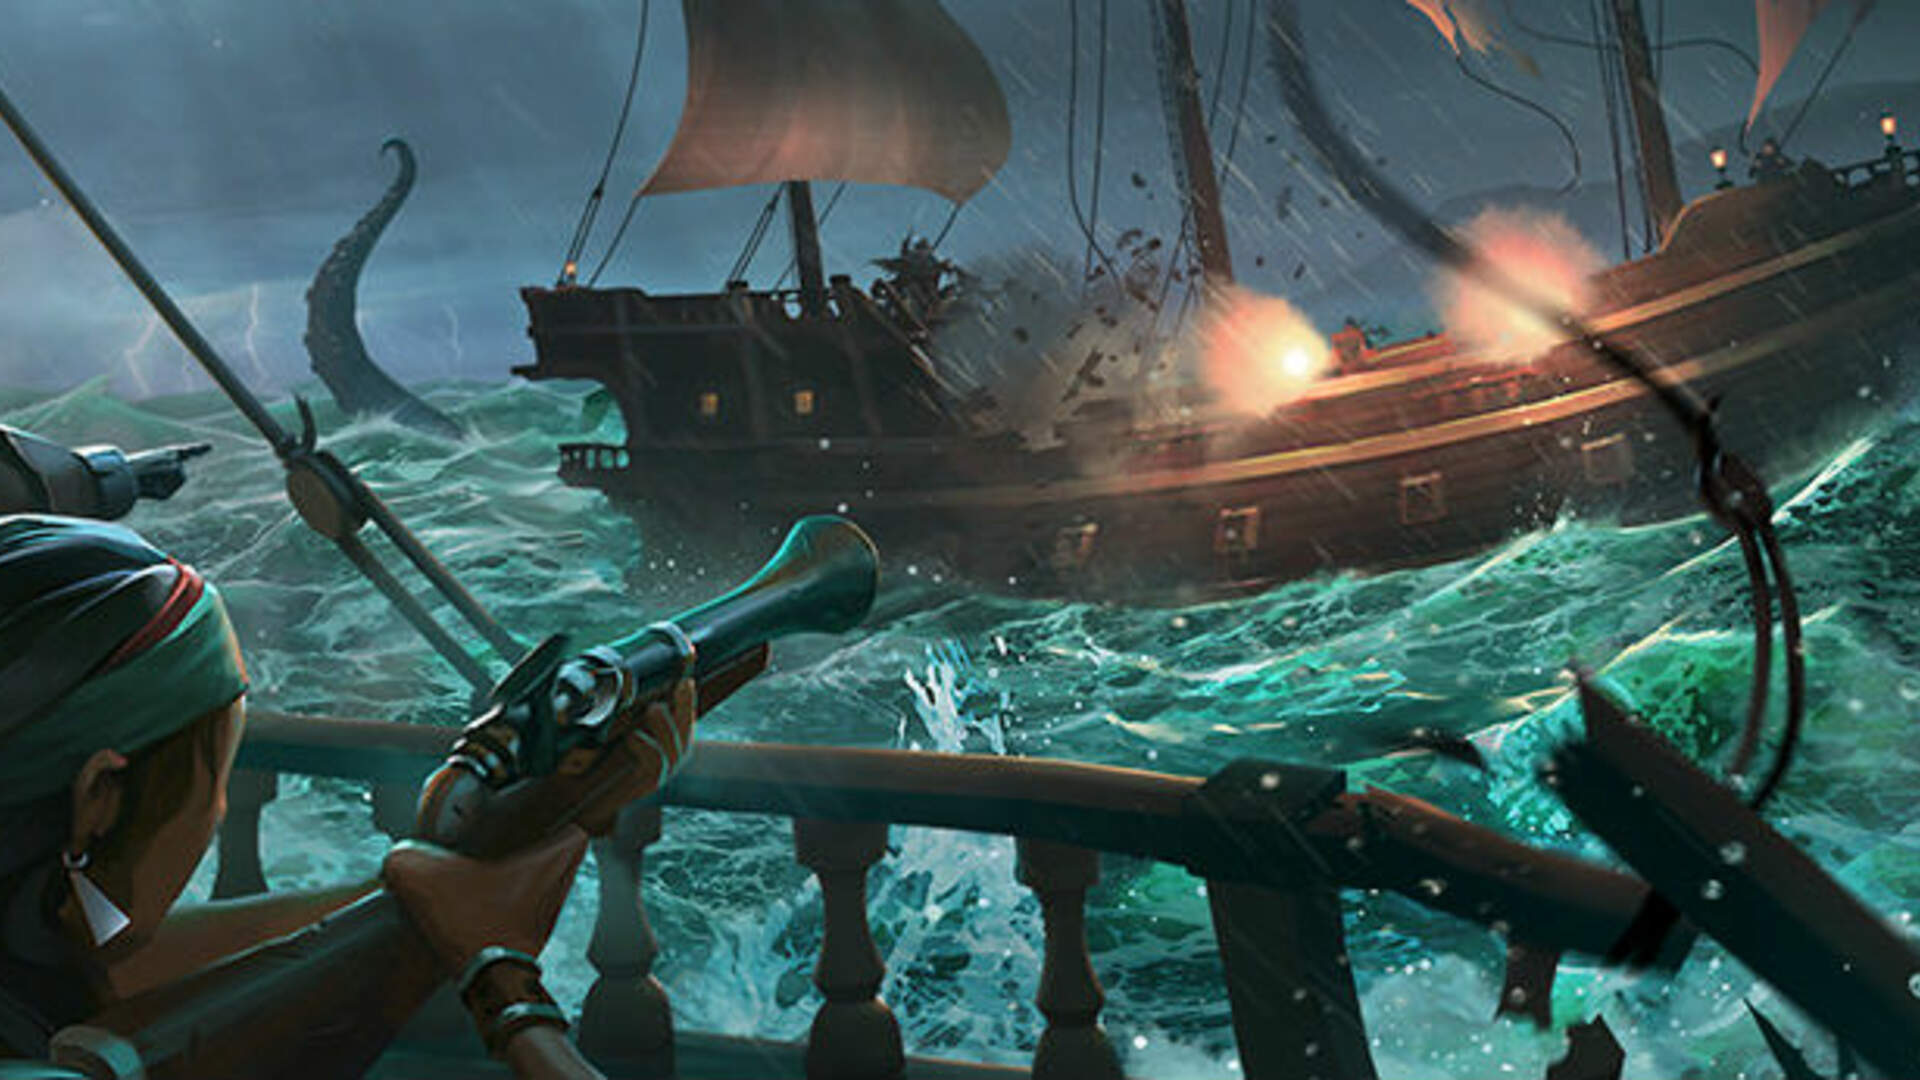 Sea of Thieves Players Have Already Killed the Kraken, and it's a Bit of a Downer